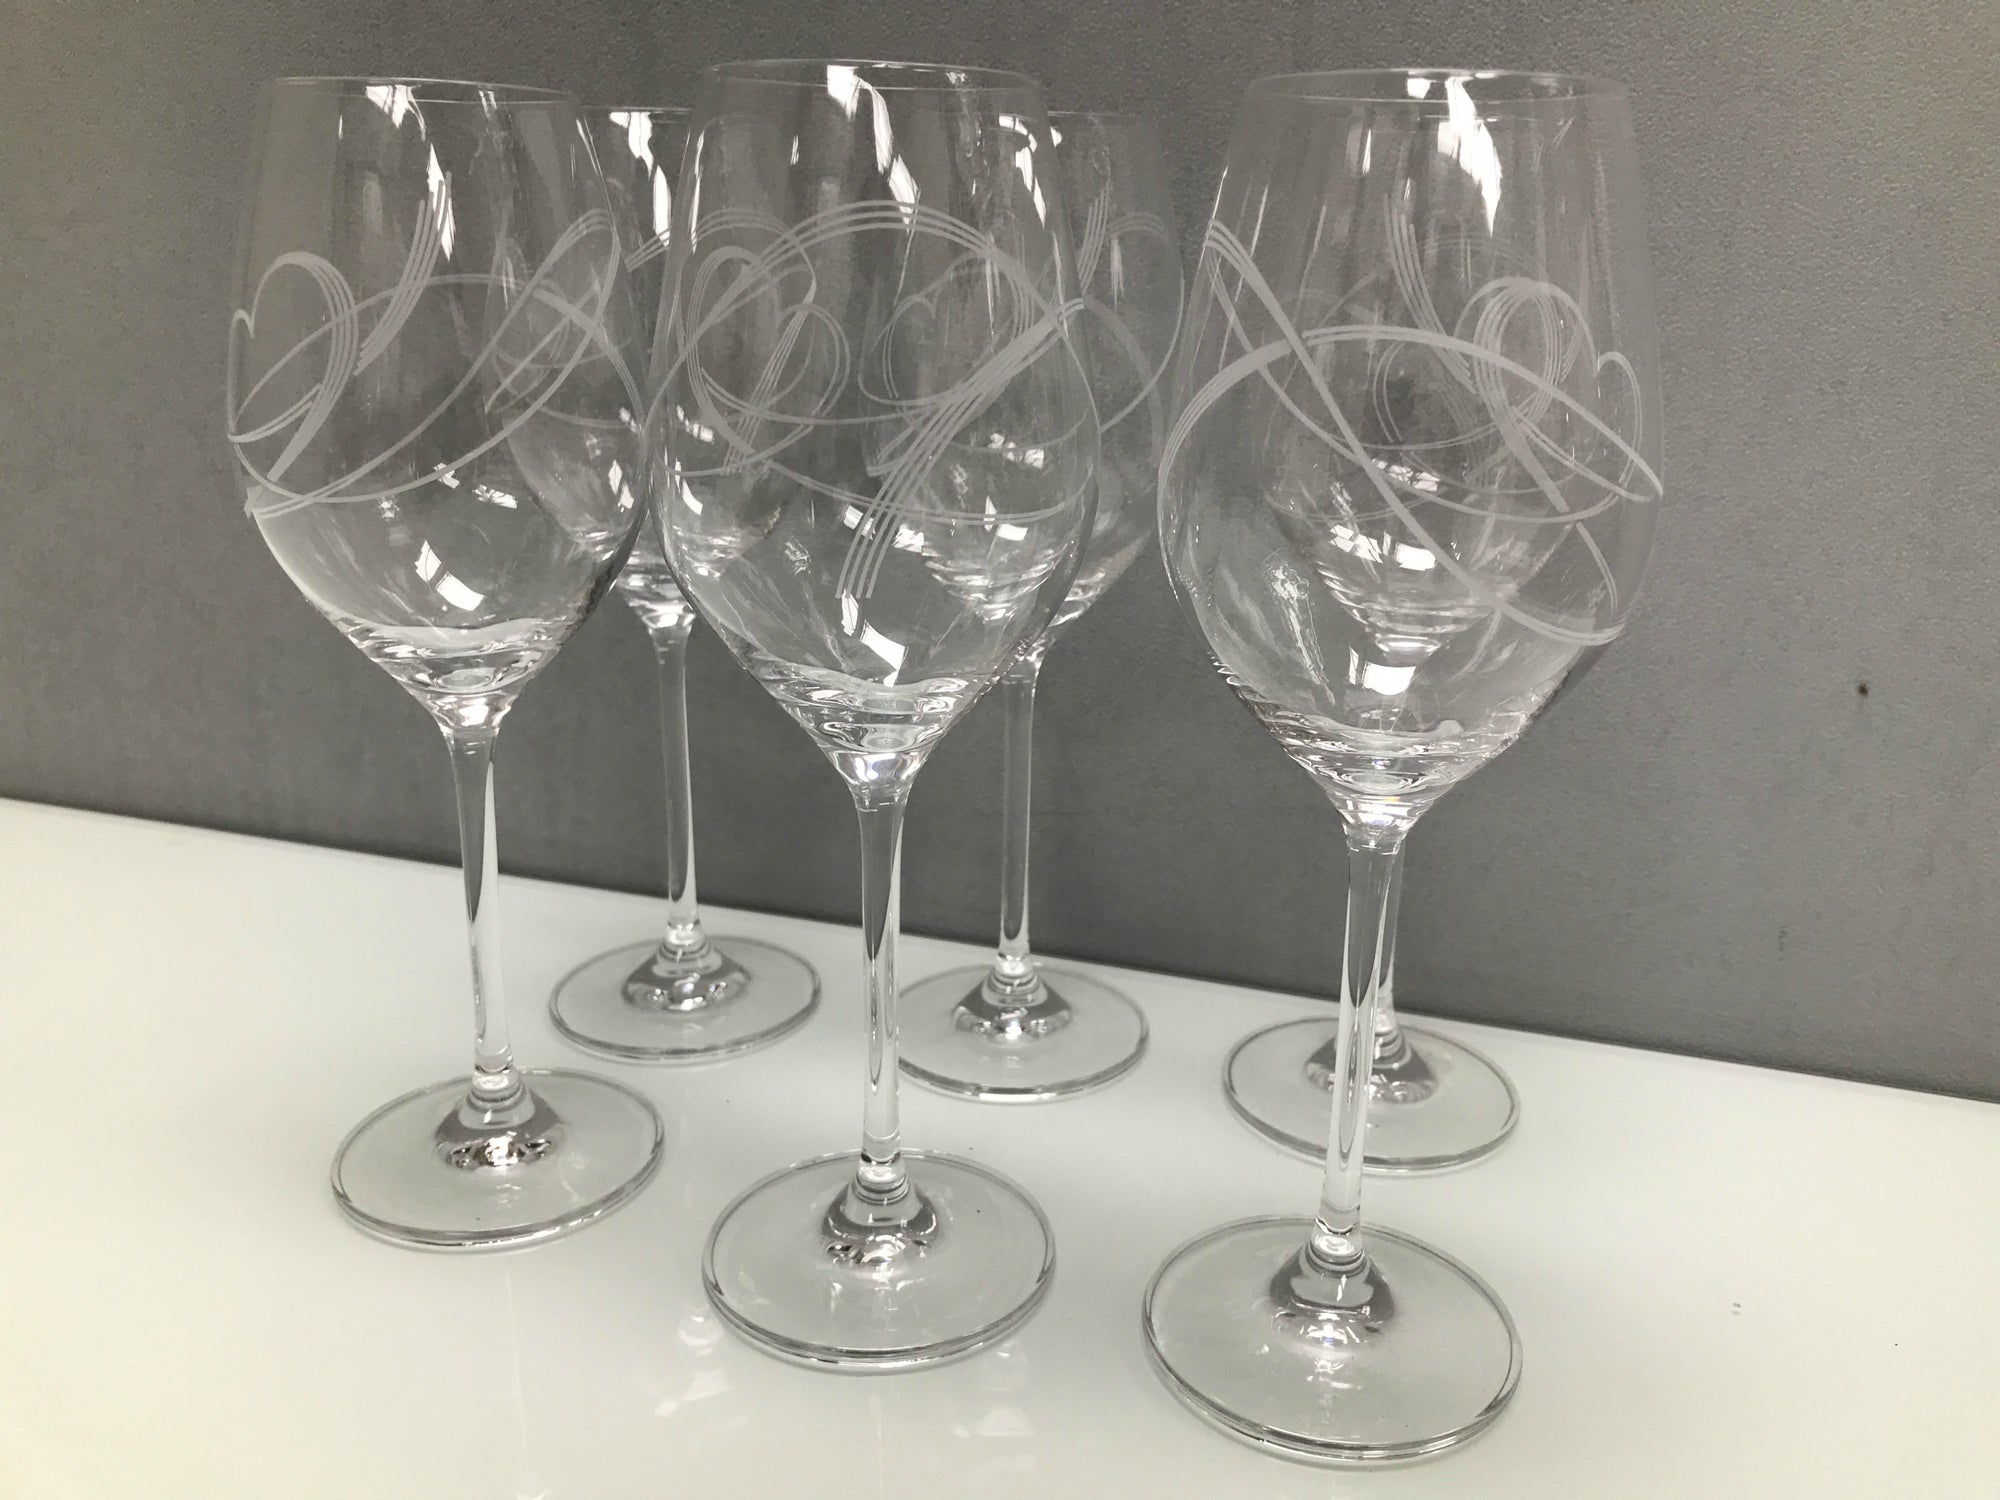 Set 6 Swirl Heart wine glasses, glass clear